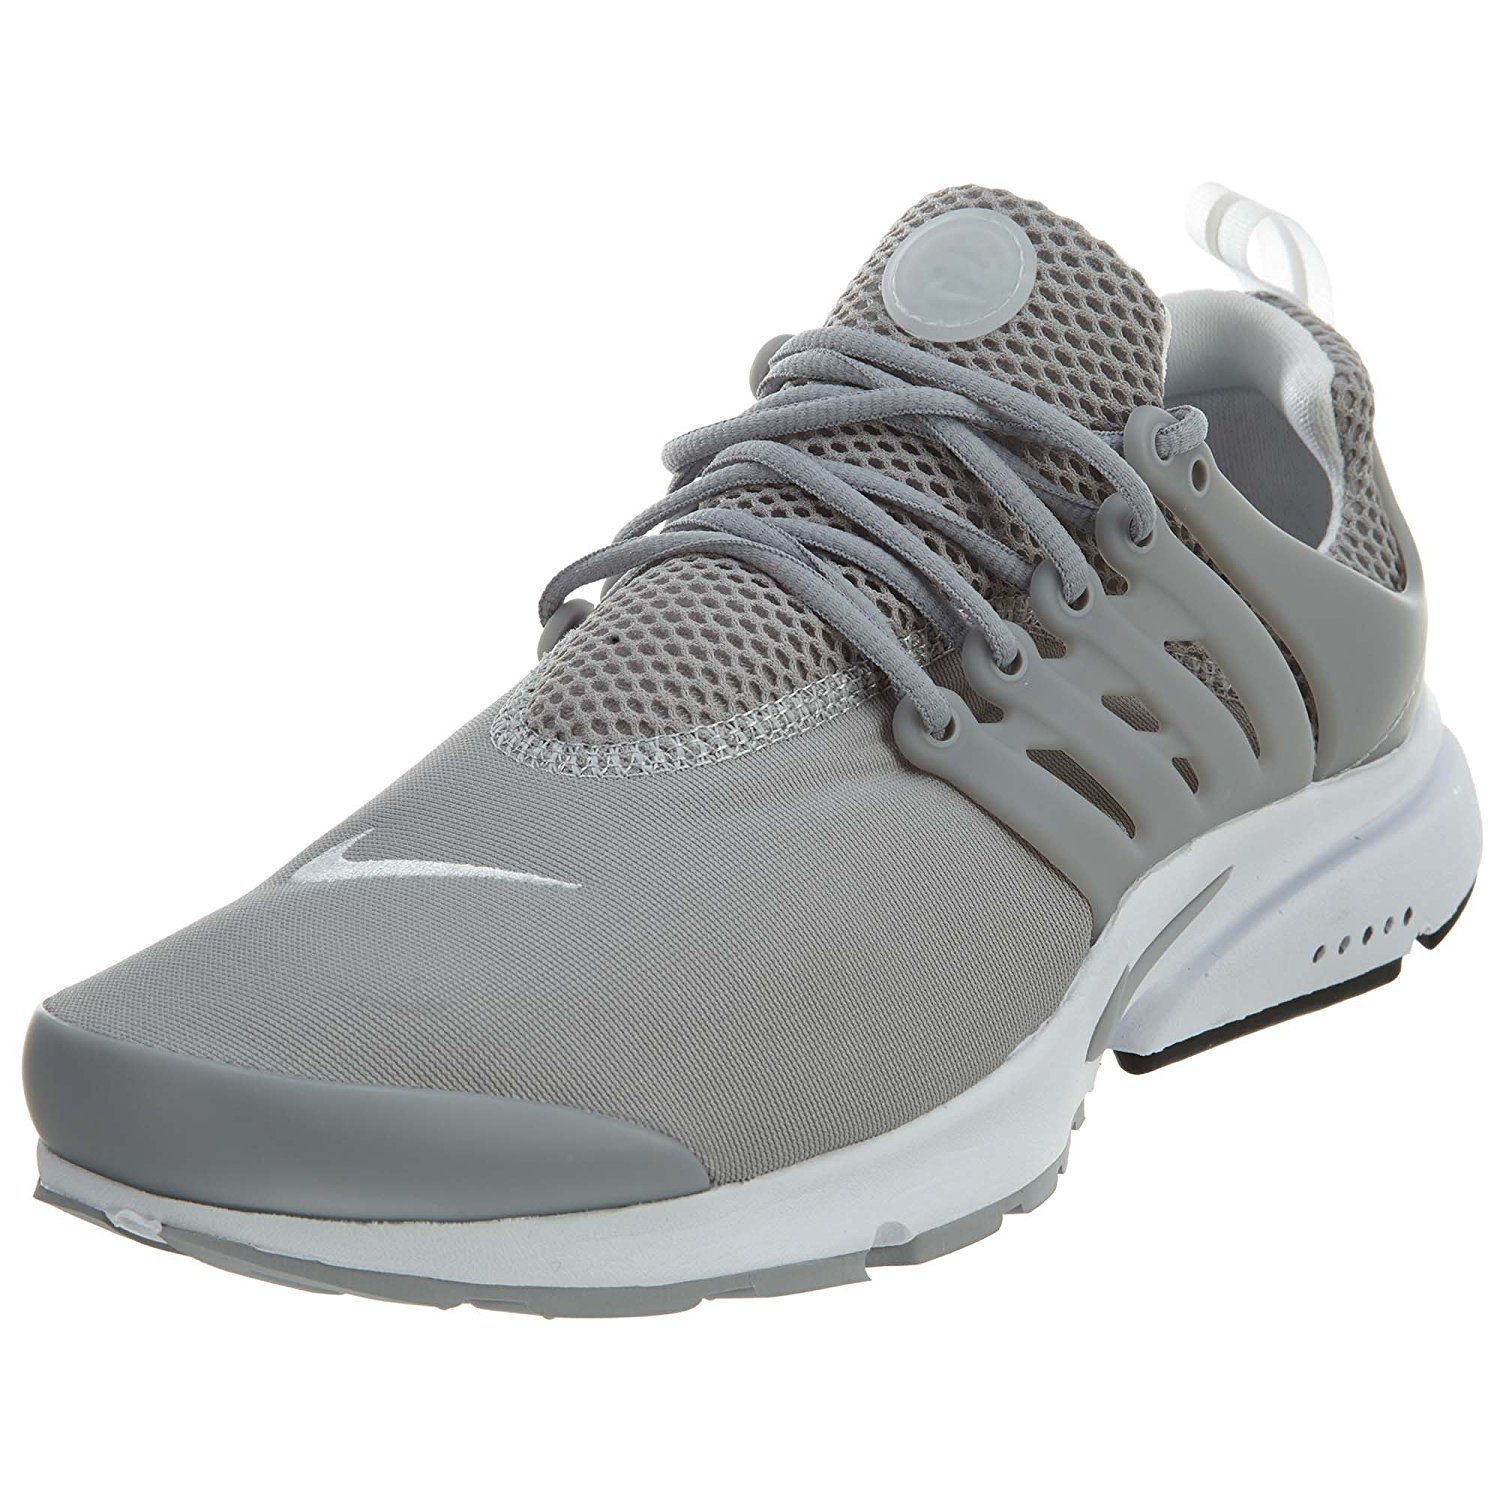 best authentic various colors undefeated x Nike Herren Air Presto Essential Grau Textil/Synthetik Sneaker